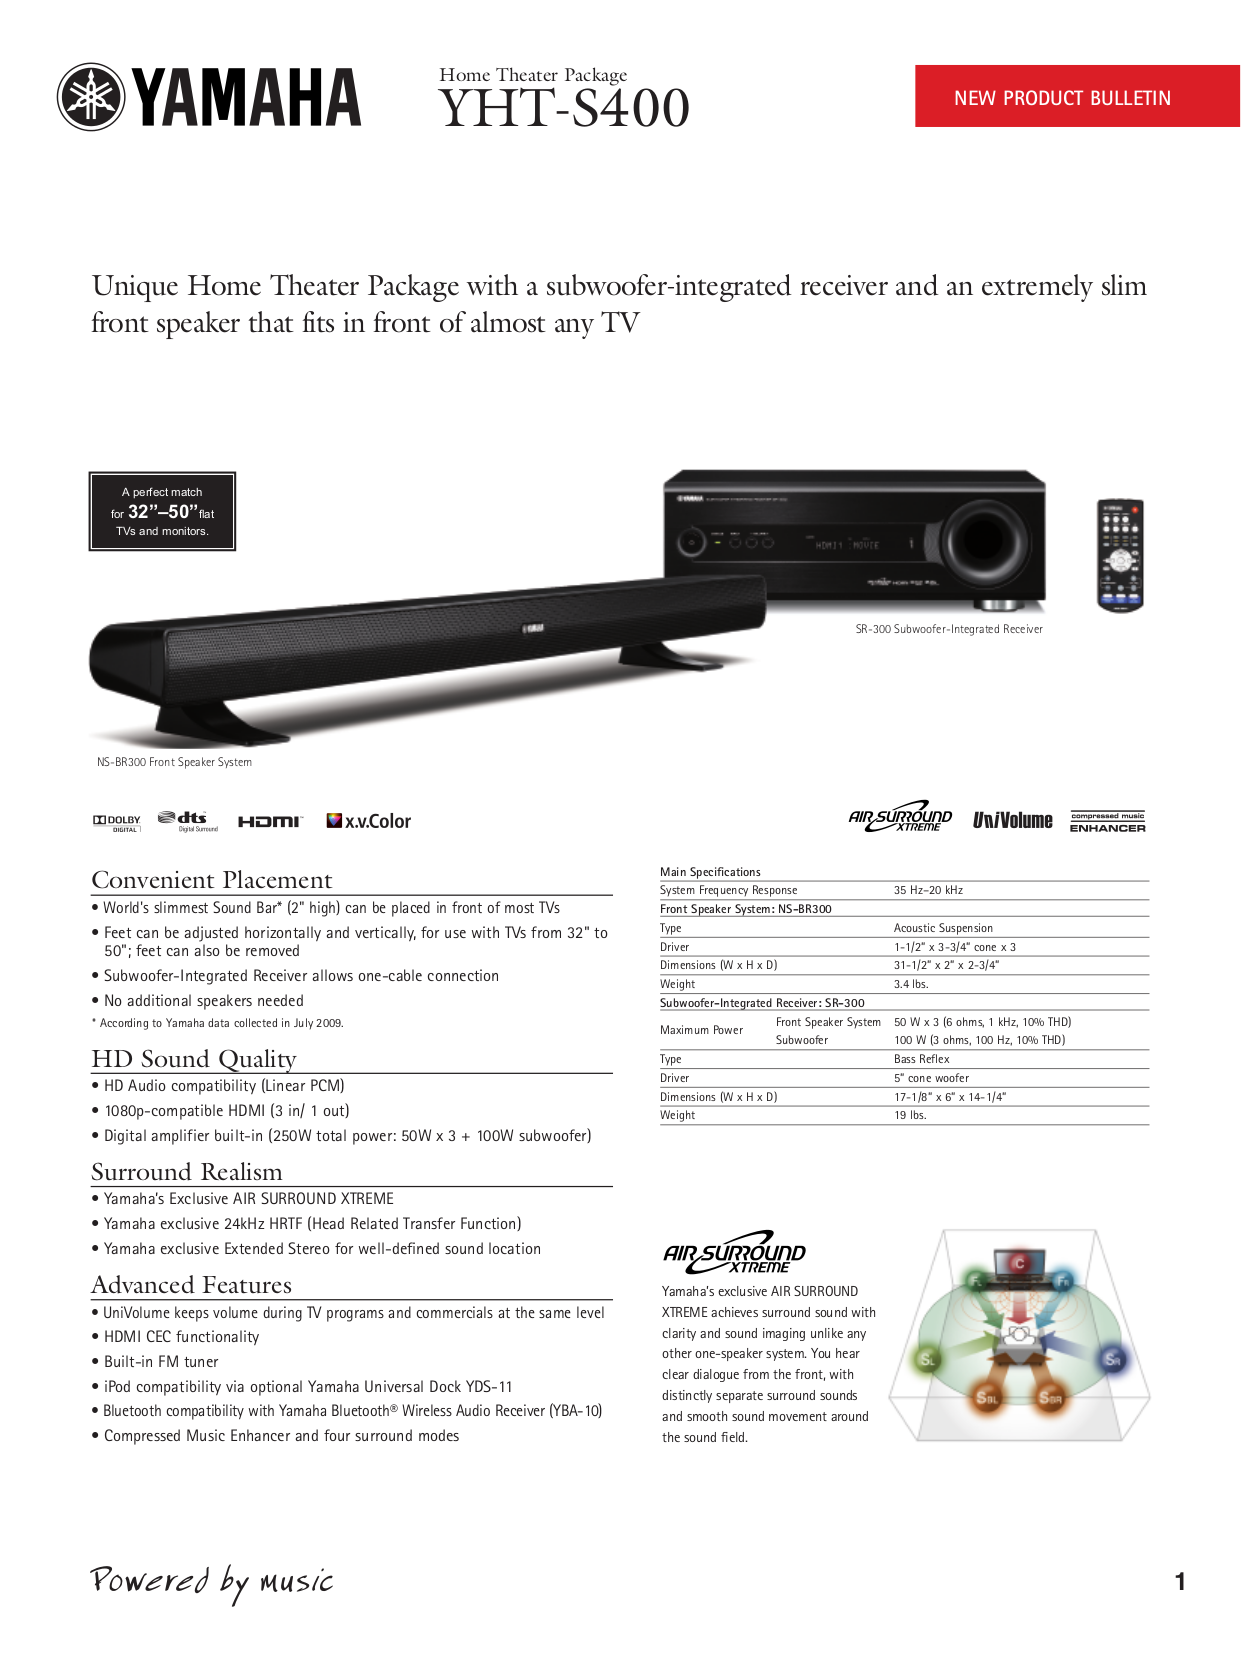 download free pdf for yamaha yht s400 home theater manual rh umlib com Yamaha Home Theater System yamaha yht-s400 manual